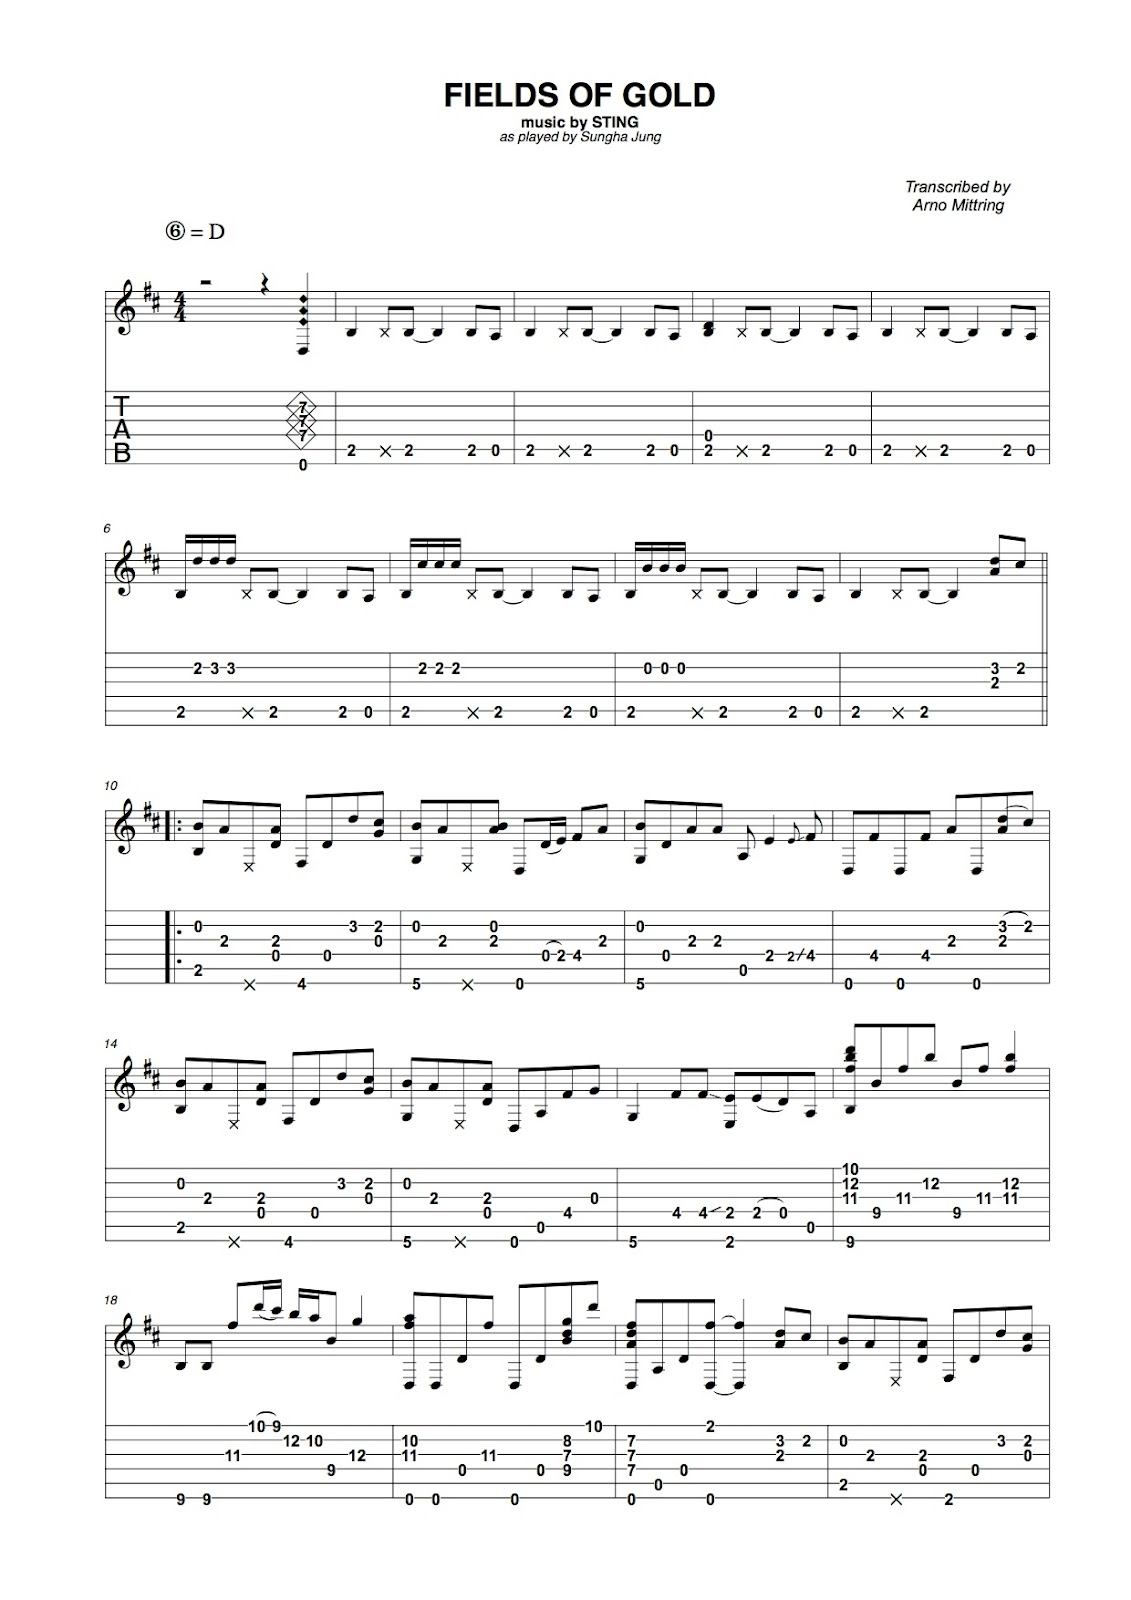 Poolguitarblog: (Sting) Fields of Gold - Sungha Jung incl tabs